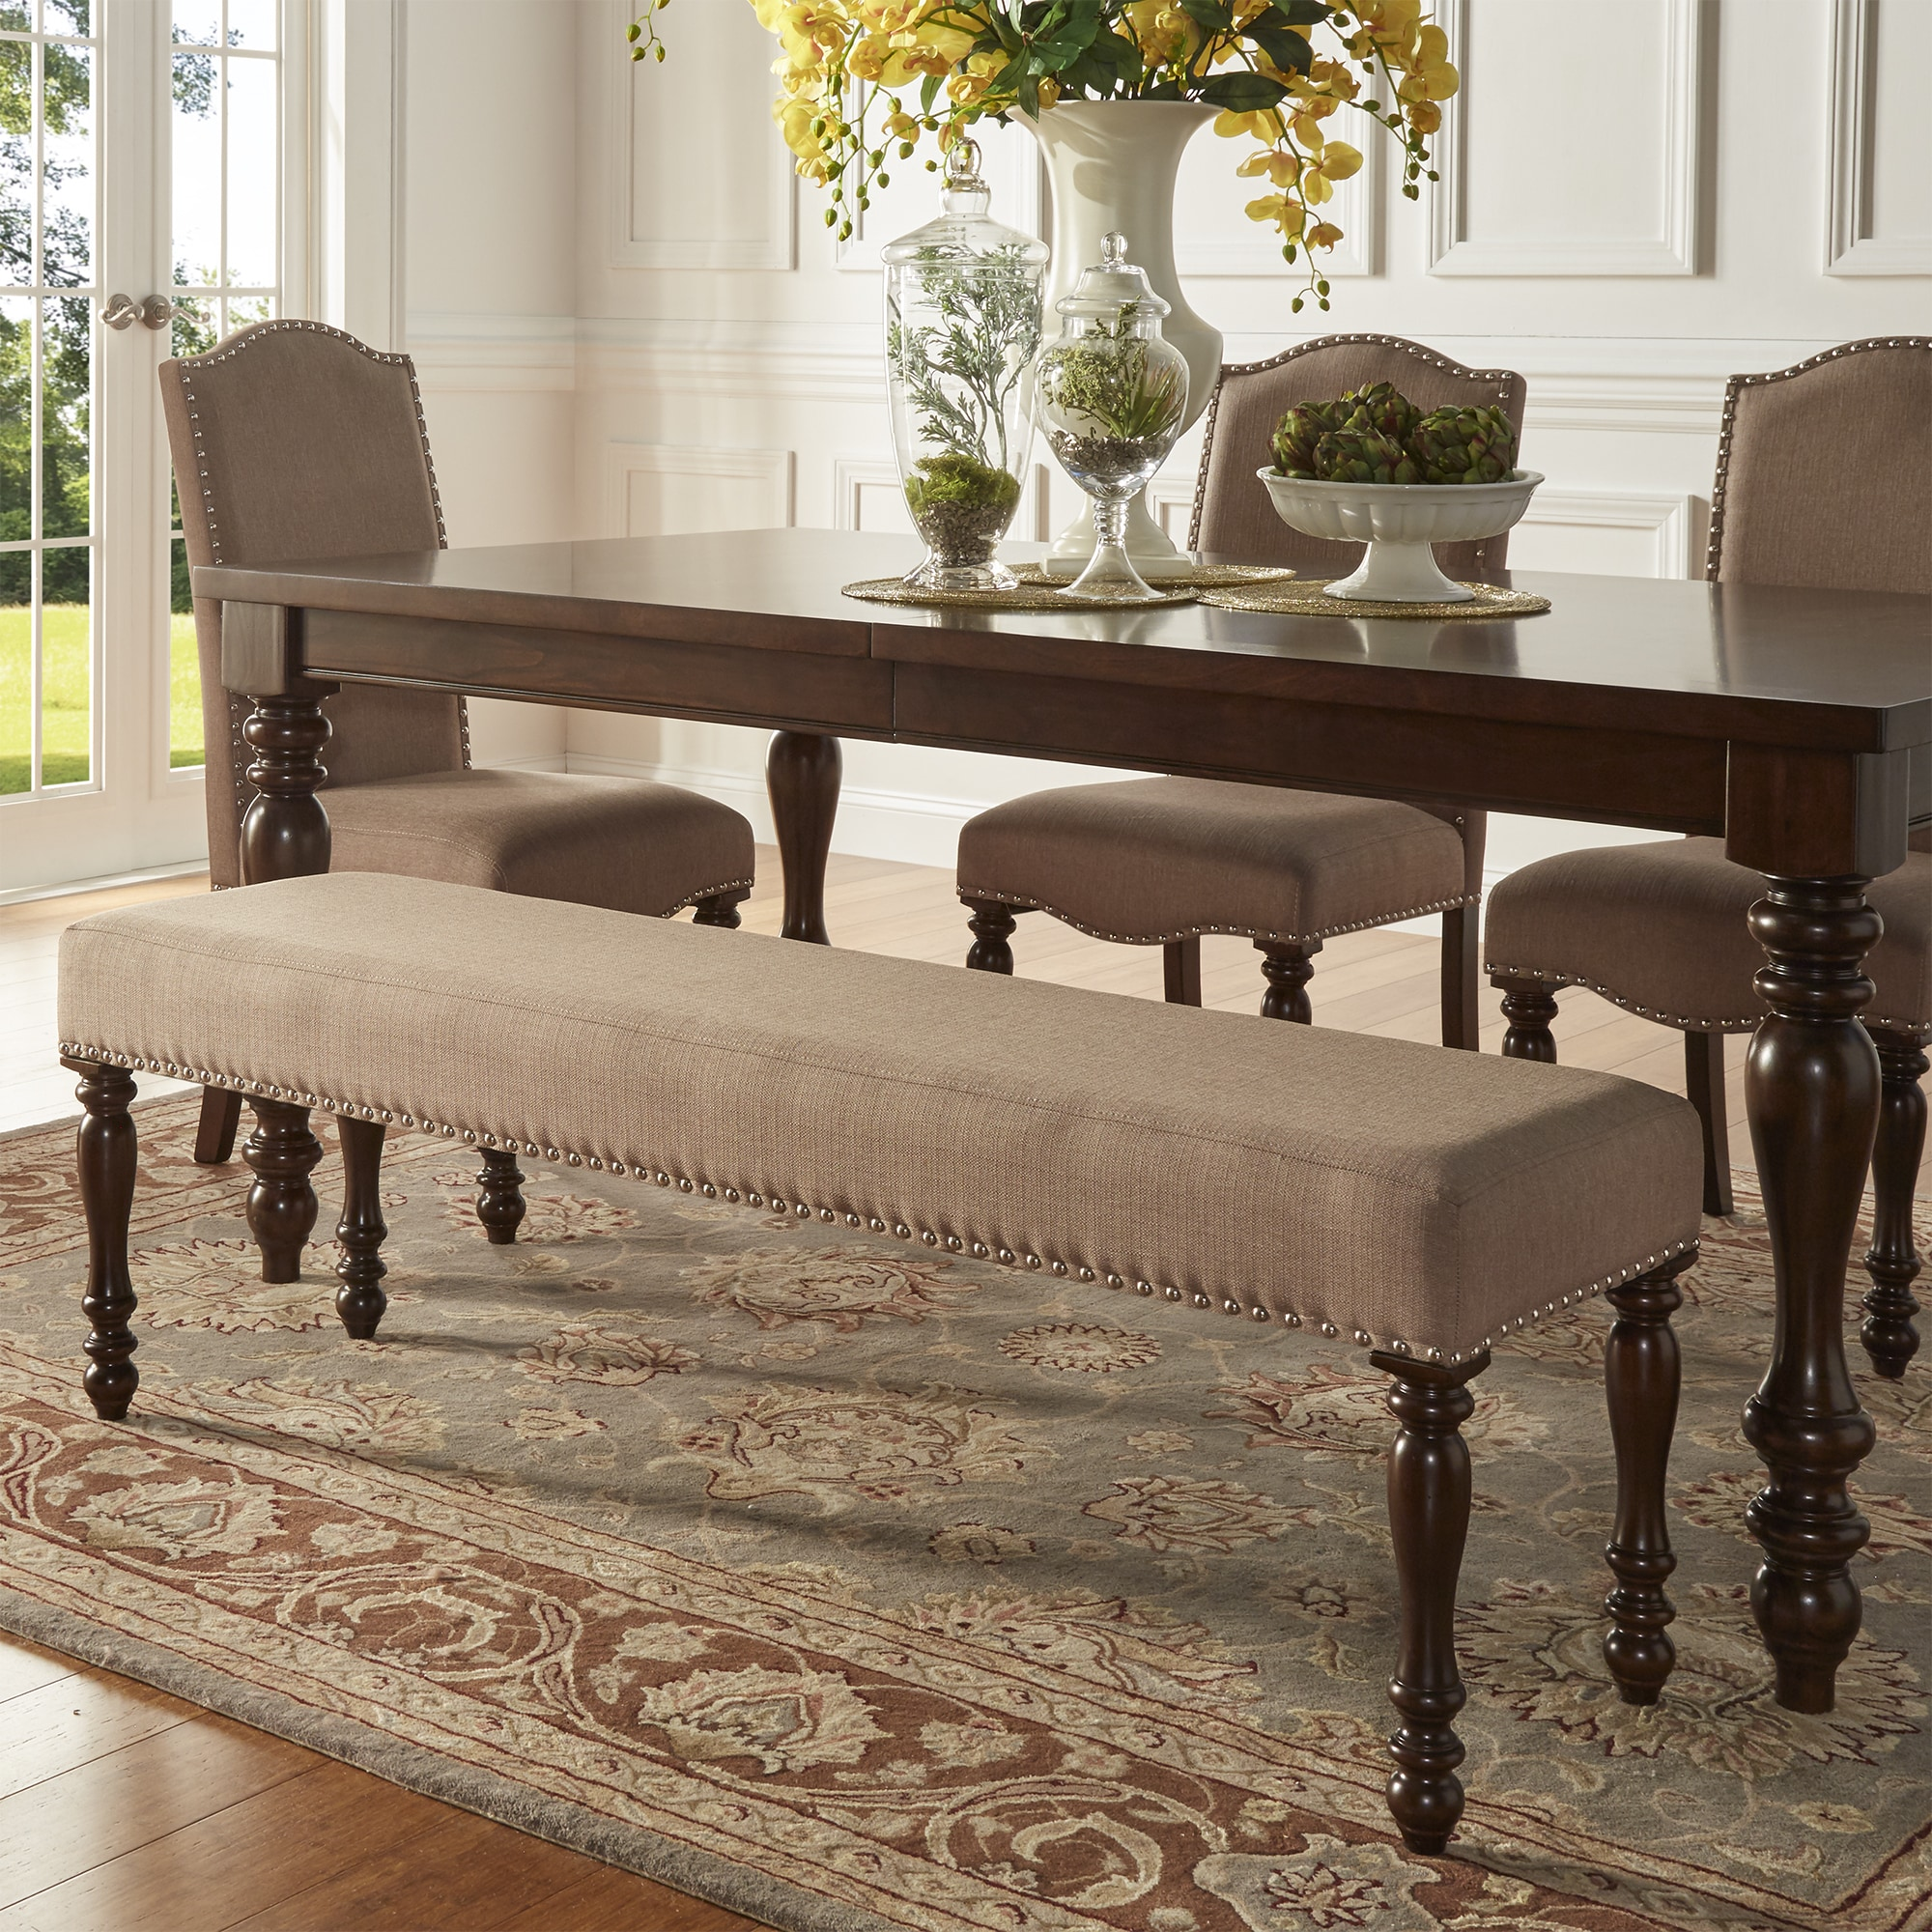 Magnificent Parisian Nailhead 56 Inch Upholstered Dining Bench By Inspire Q Classic N A Ibusinesslaw Wood Chair Design Ideas Ibusinesslaworg